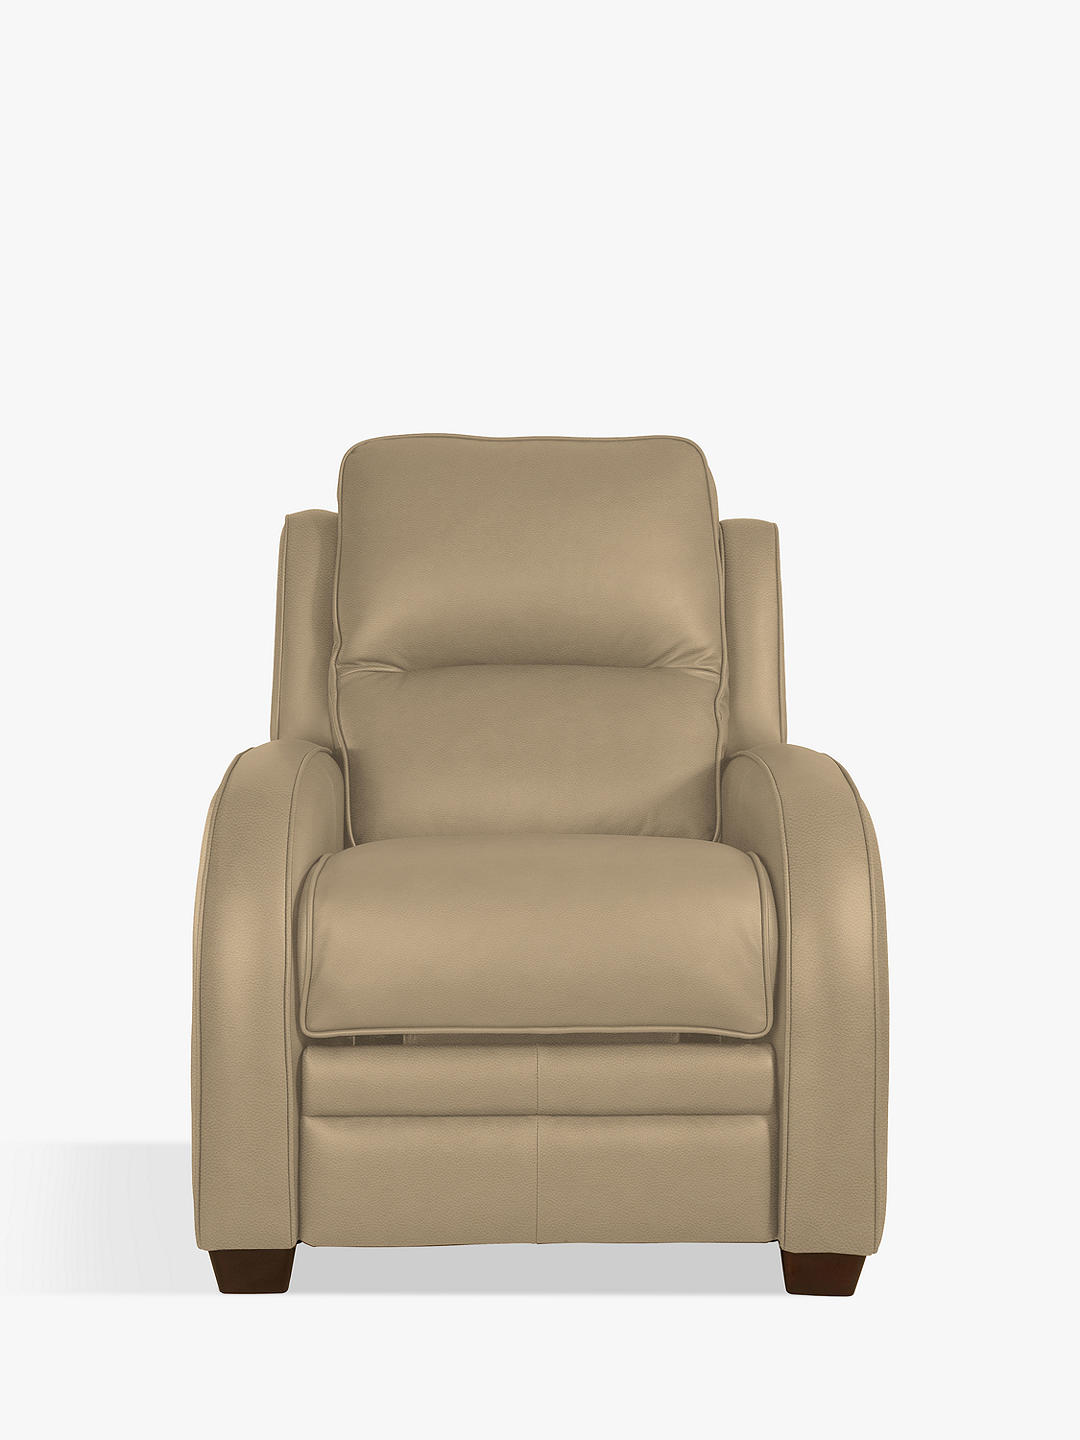 Buy Parker Knoll Charleston Leather Power Recliner Armchair, Como Taupe Leather Online at johnlewis.com